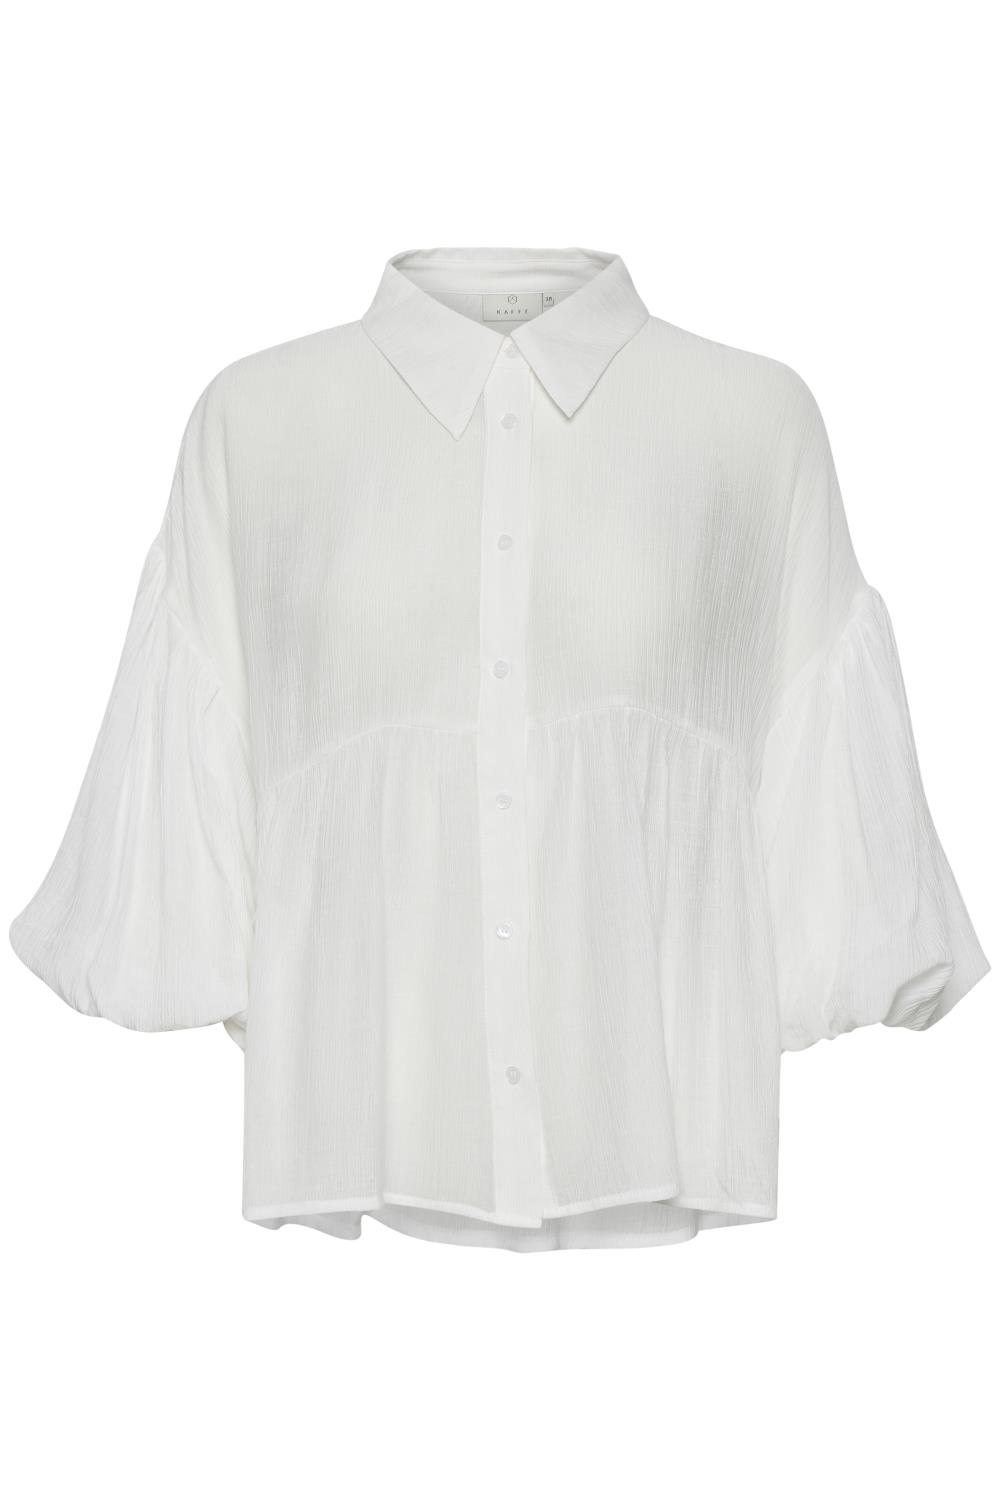 Kaffe Charla shirt 3/4 sleeve, chalk